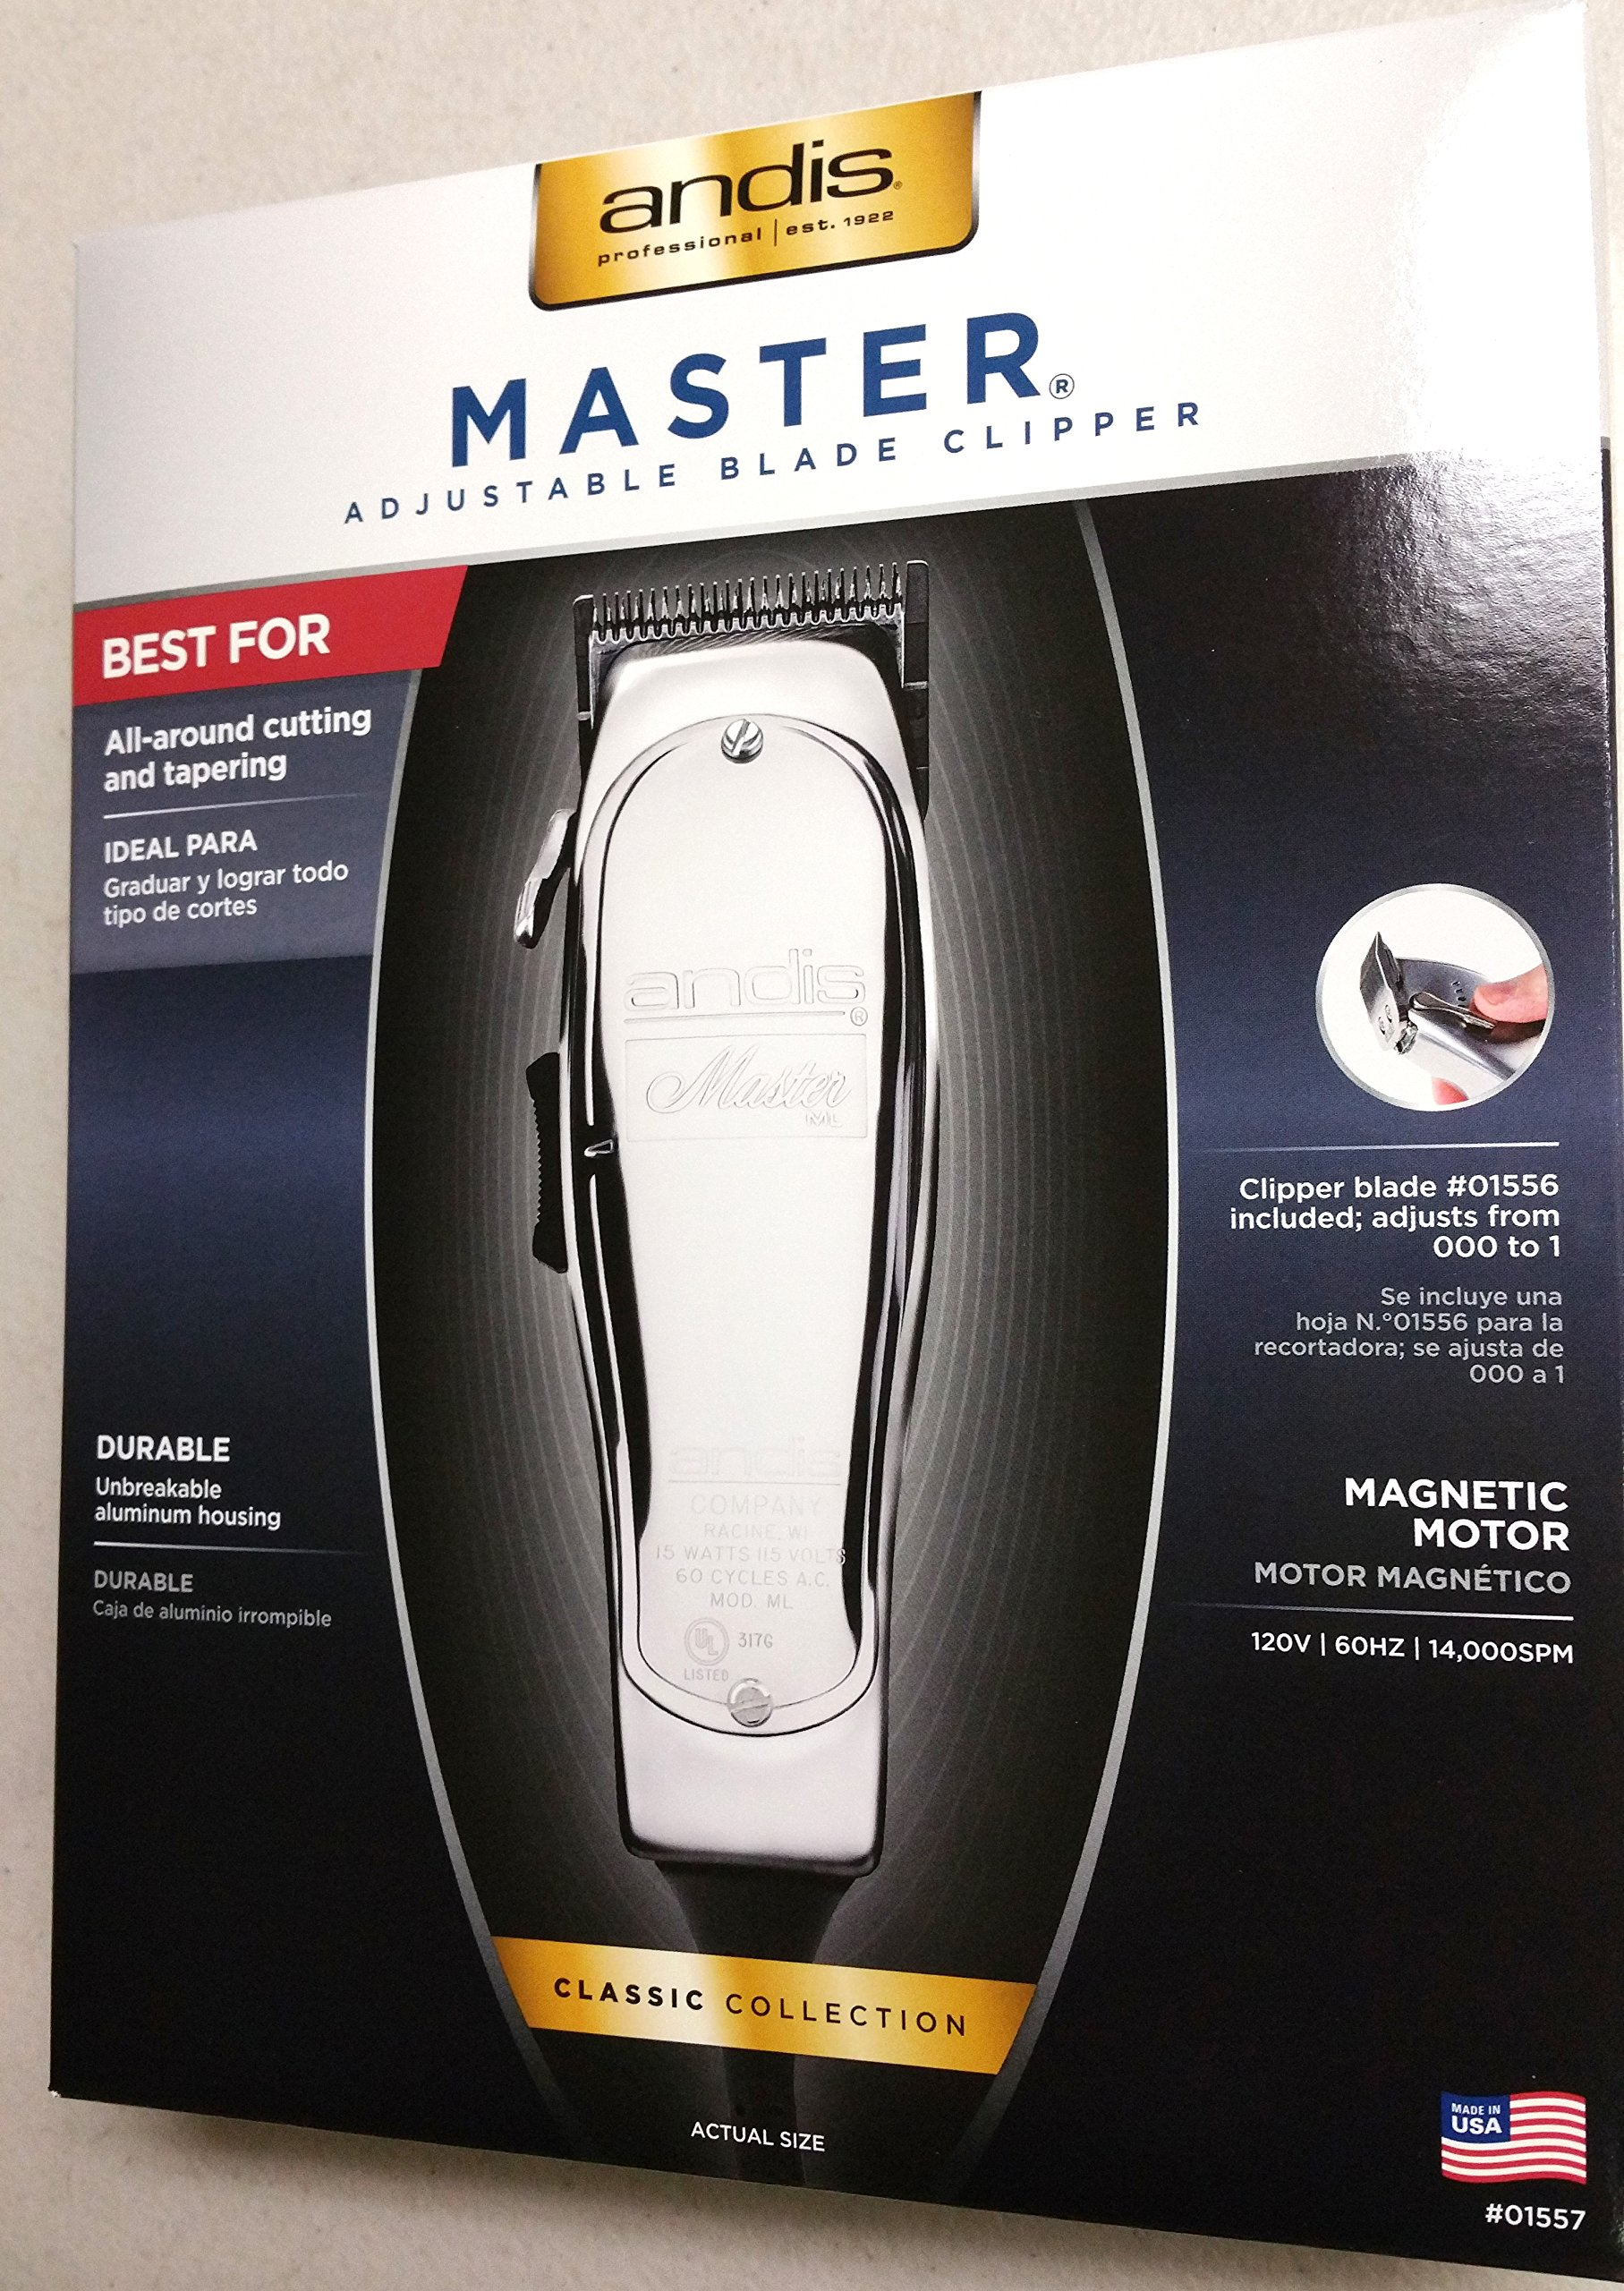 Andis Lightweight Professional Clippers, with Unbreakable Aluminum Housing, Motor Generates 14,000 Cutting Strokes Per Minute with Quiet and Cool Operation, Convenient One Handed Operation, Perfect for Cutting and Tapering